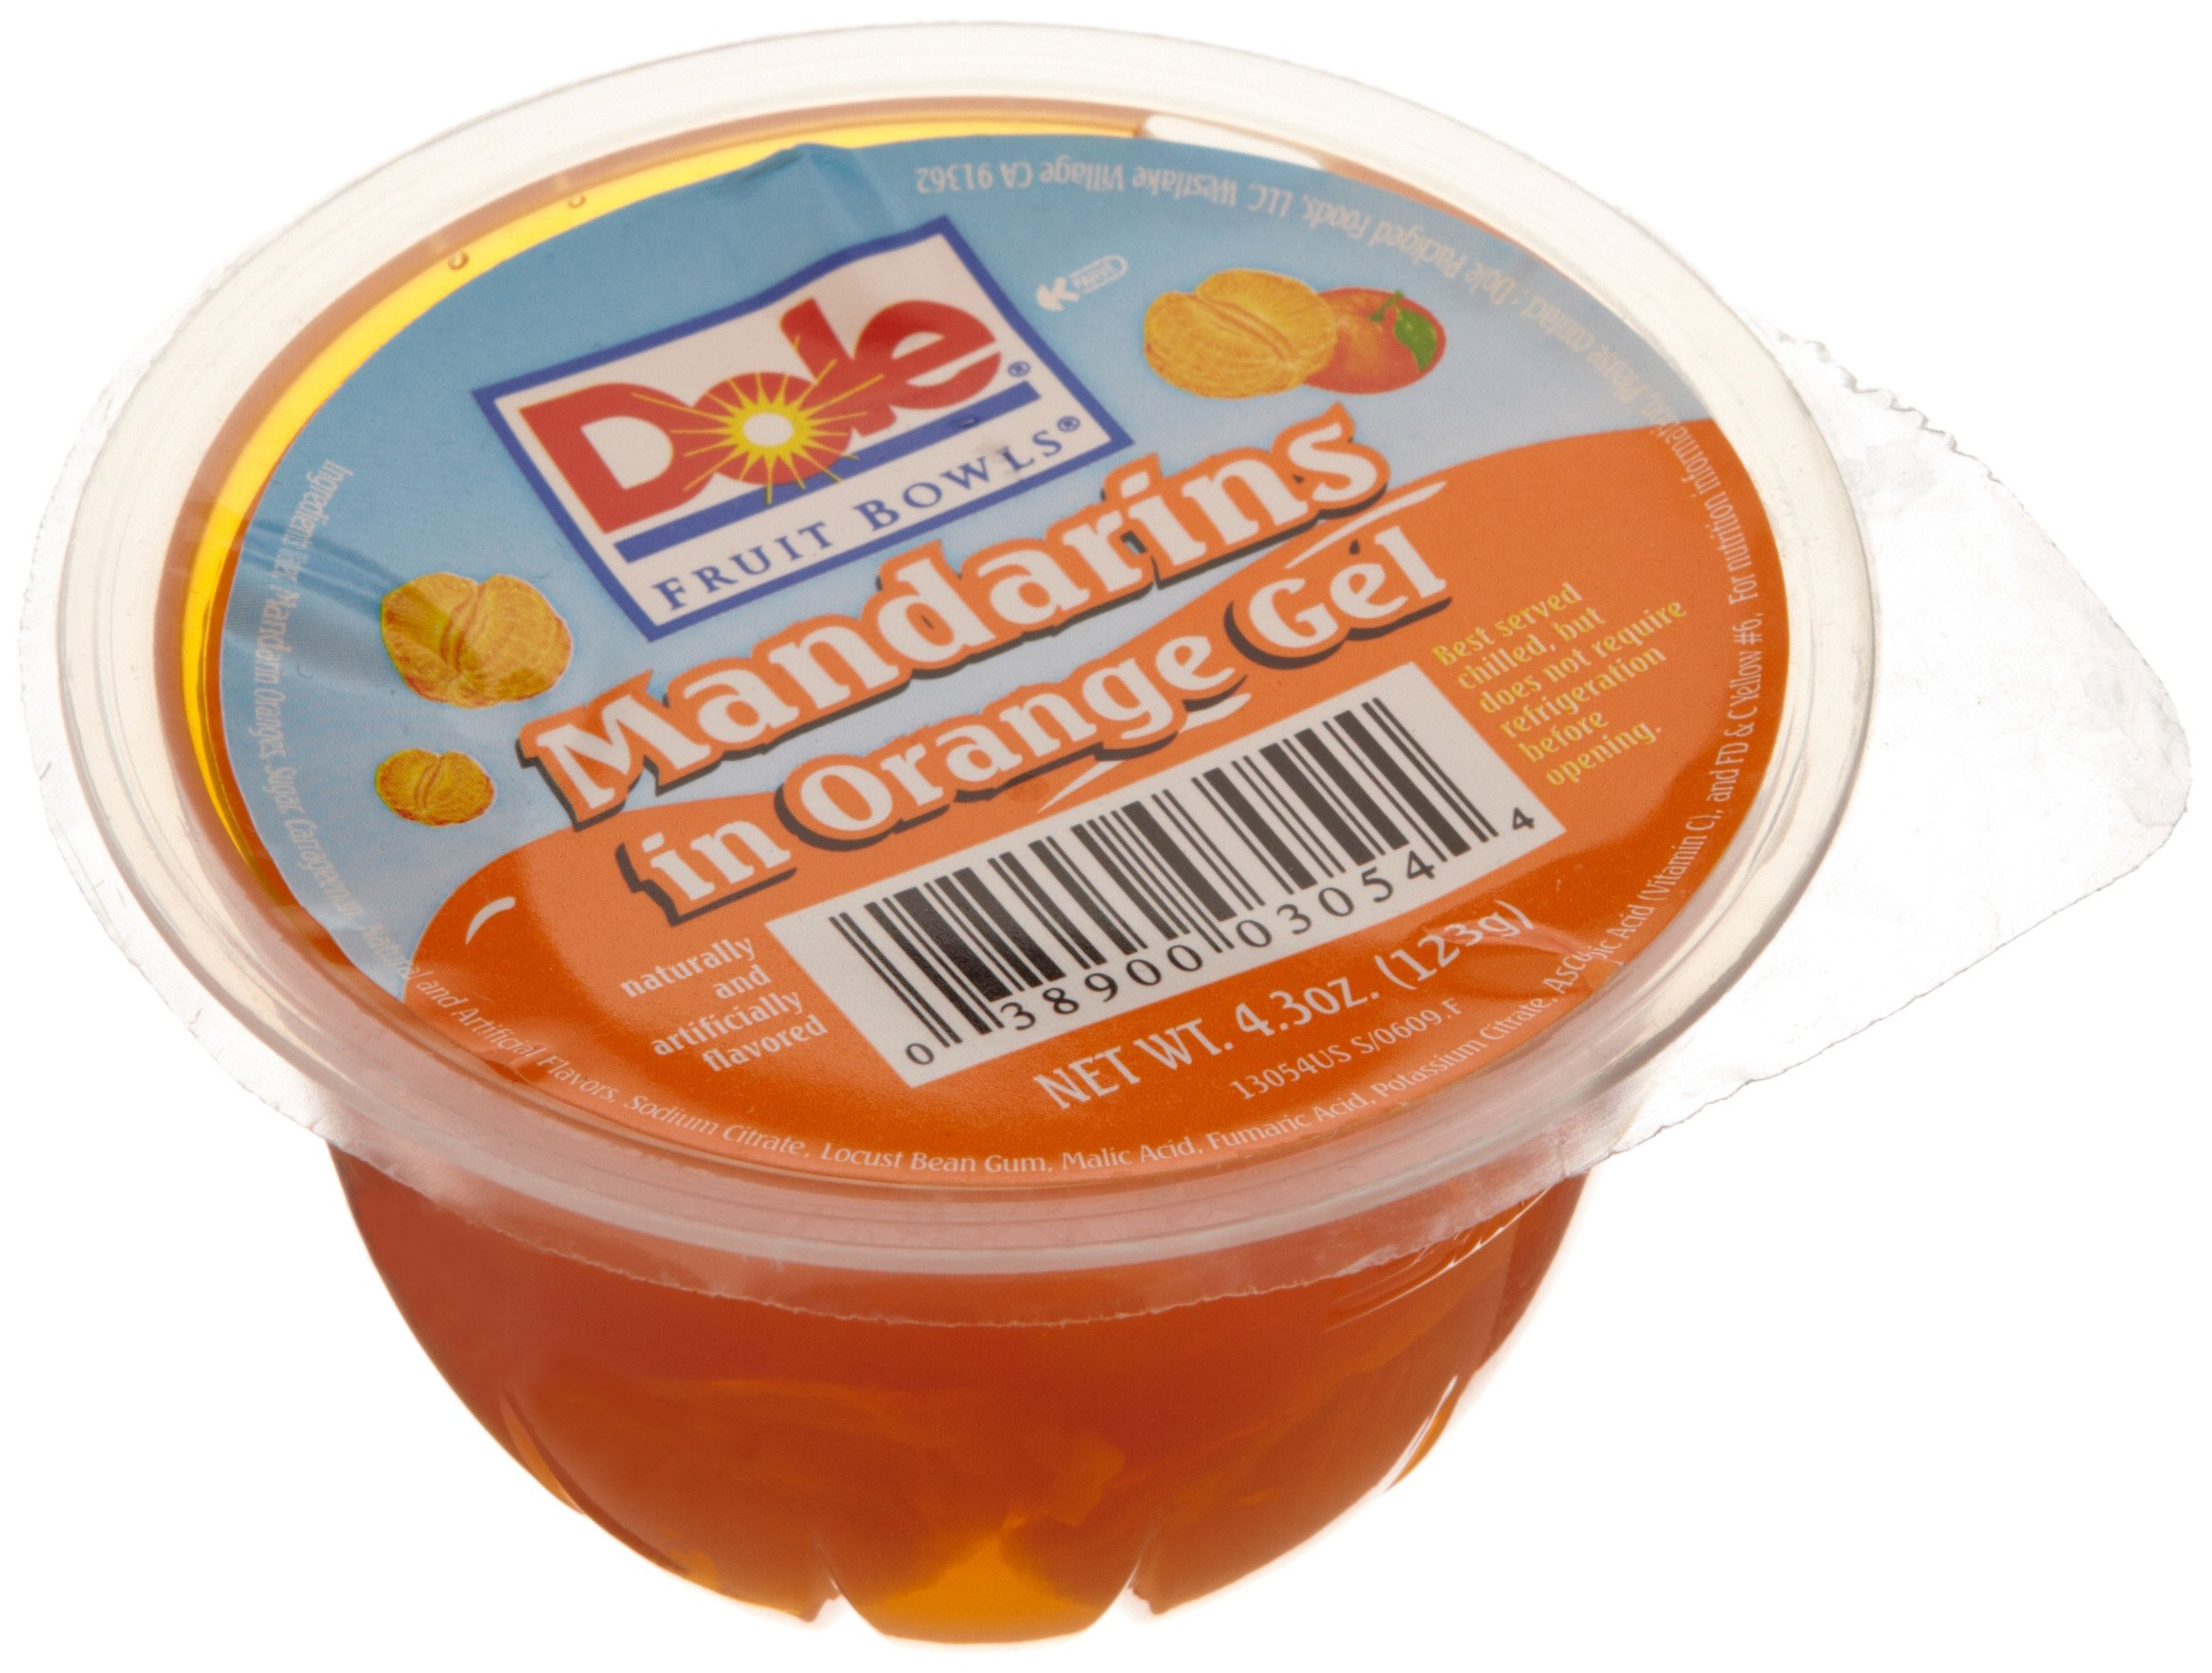 Dole Mandarin in Orange Gel, 4.3-Ounce Cups (Pack of 36) by Dole (Image #1)